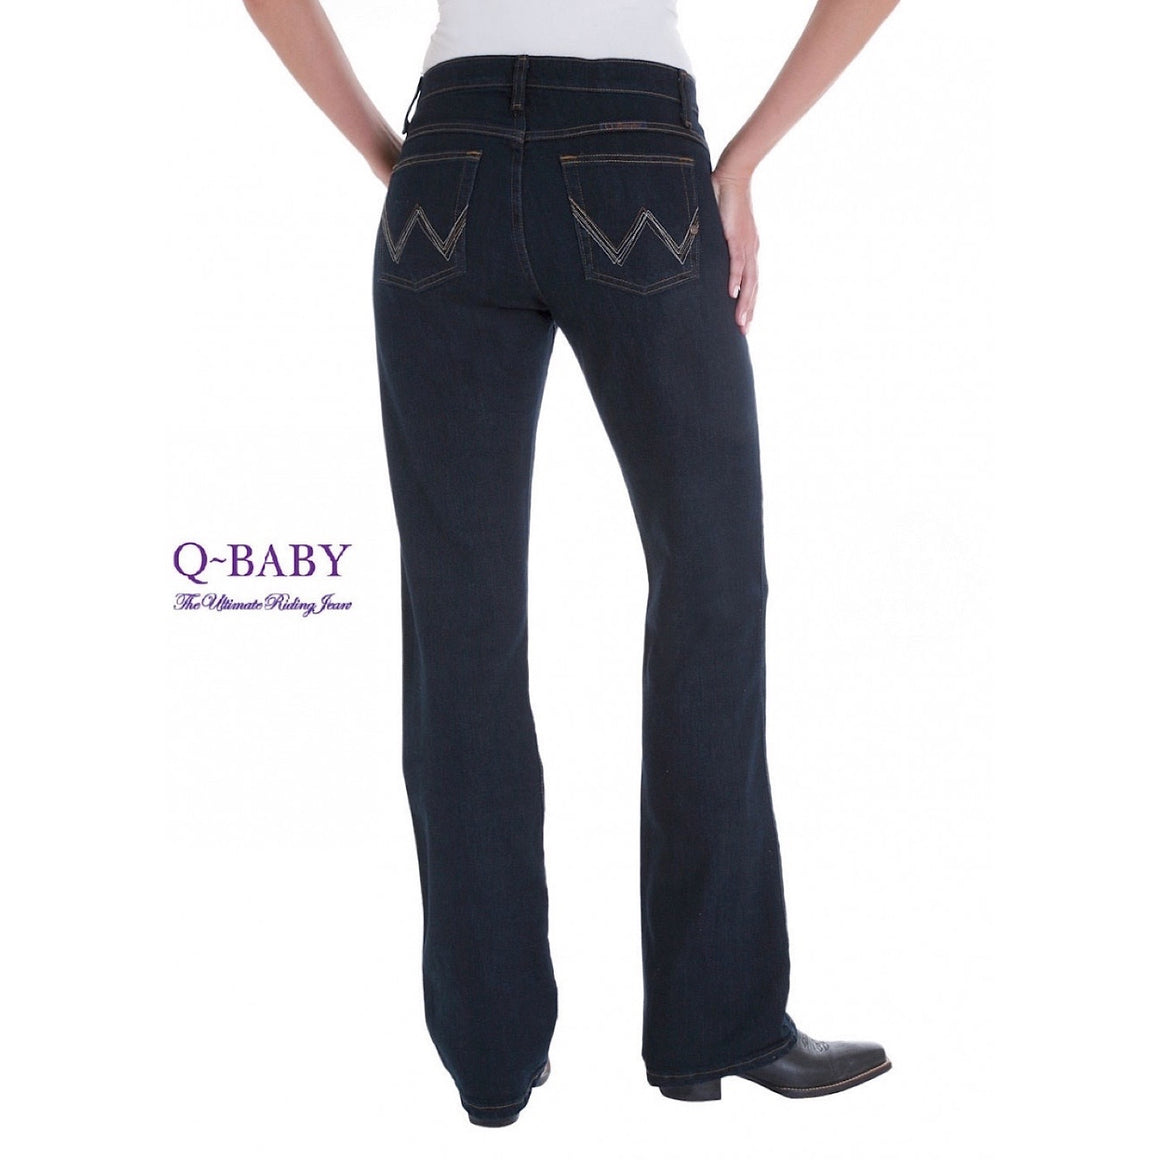 Ladies Q-Baby Ultimate Riding Jean, Dark Dynasty WRQ20DD